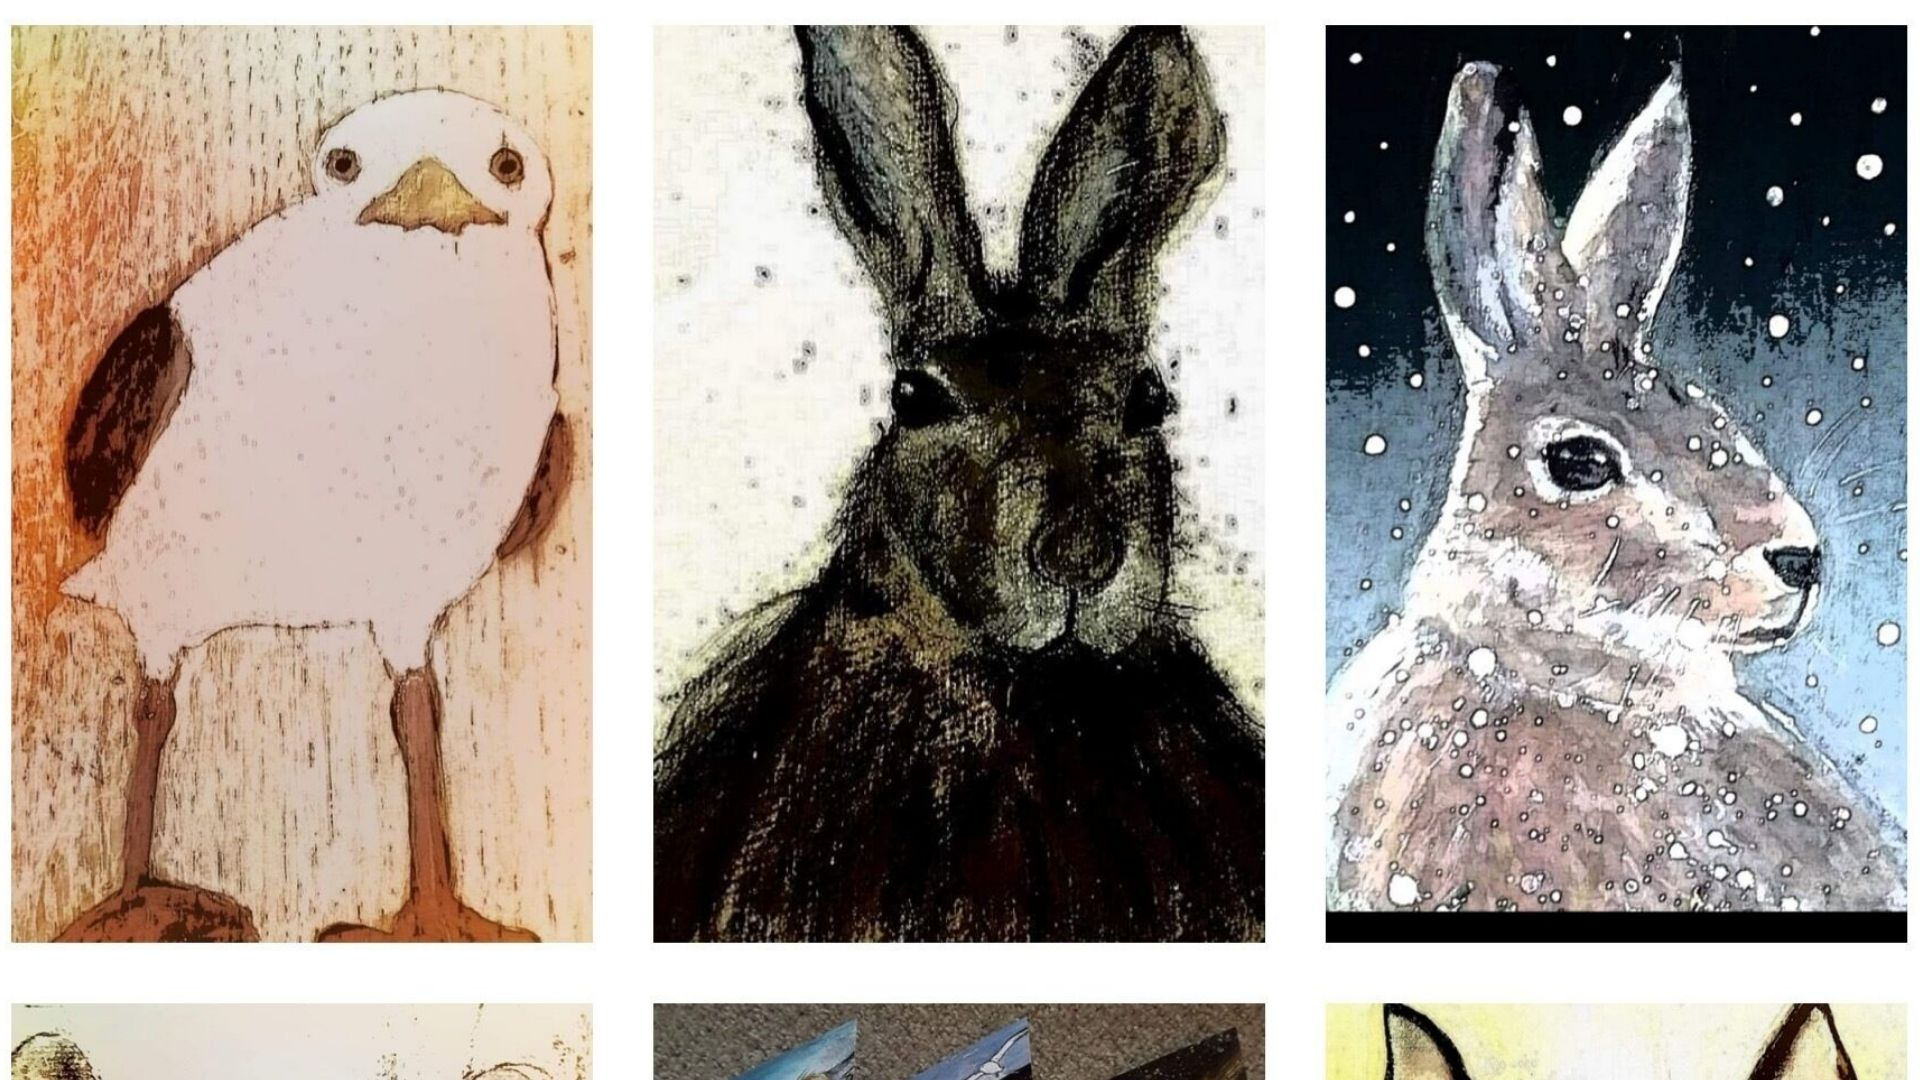 East Devon artist pledges £1 to Hospiscare for every greeting card sold